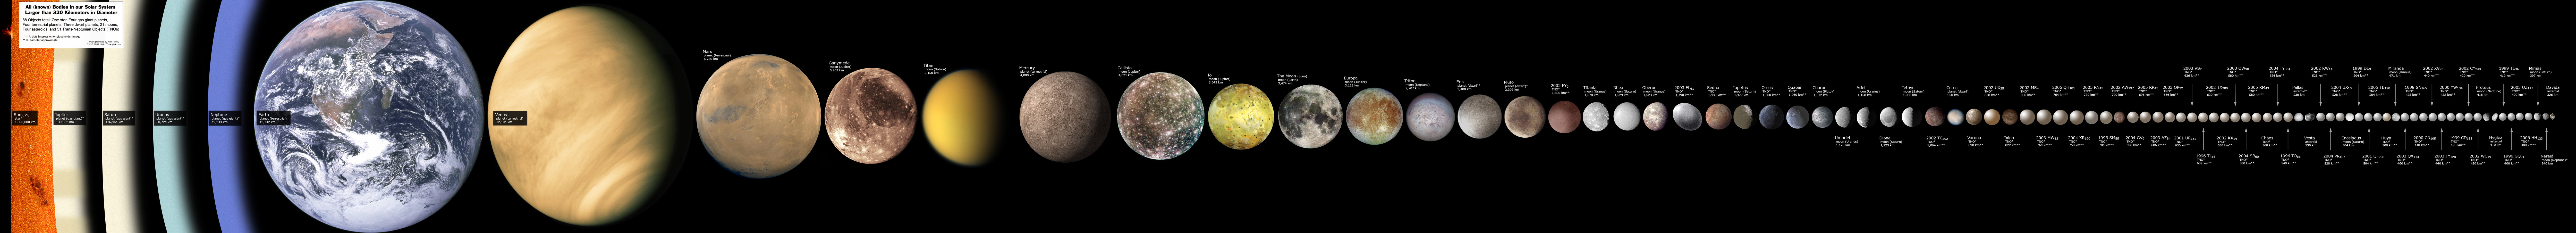 all solar system - photo #16